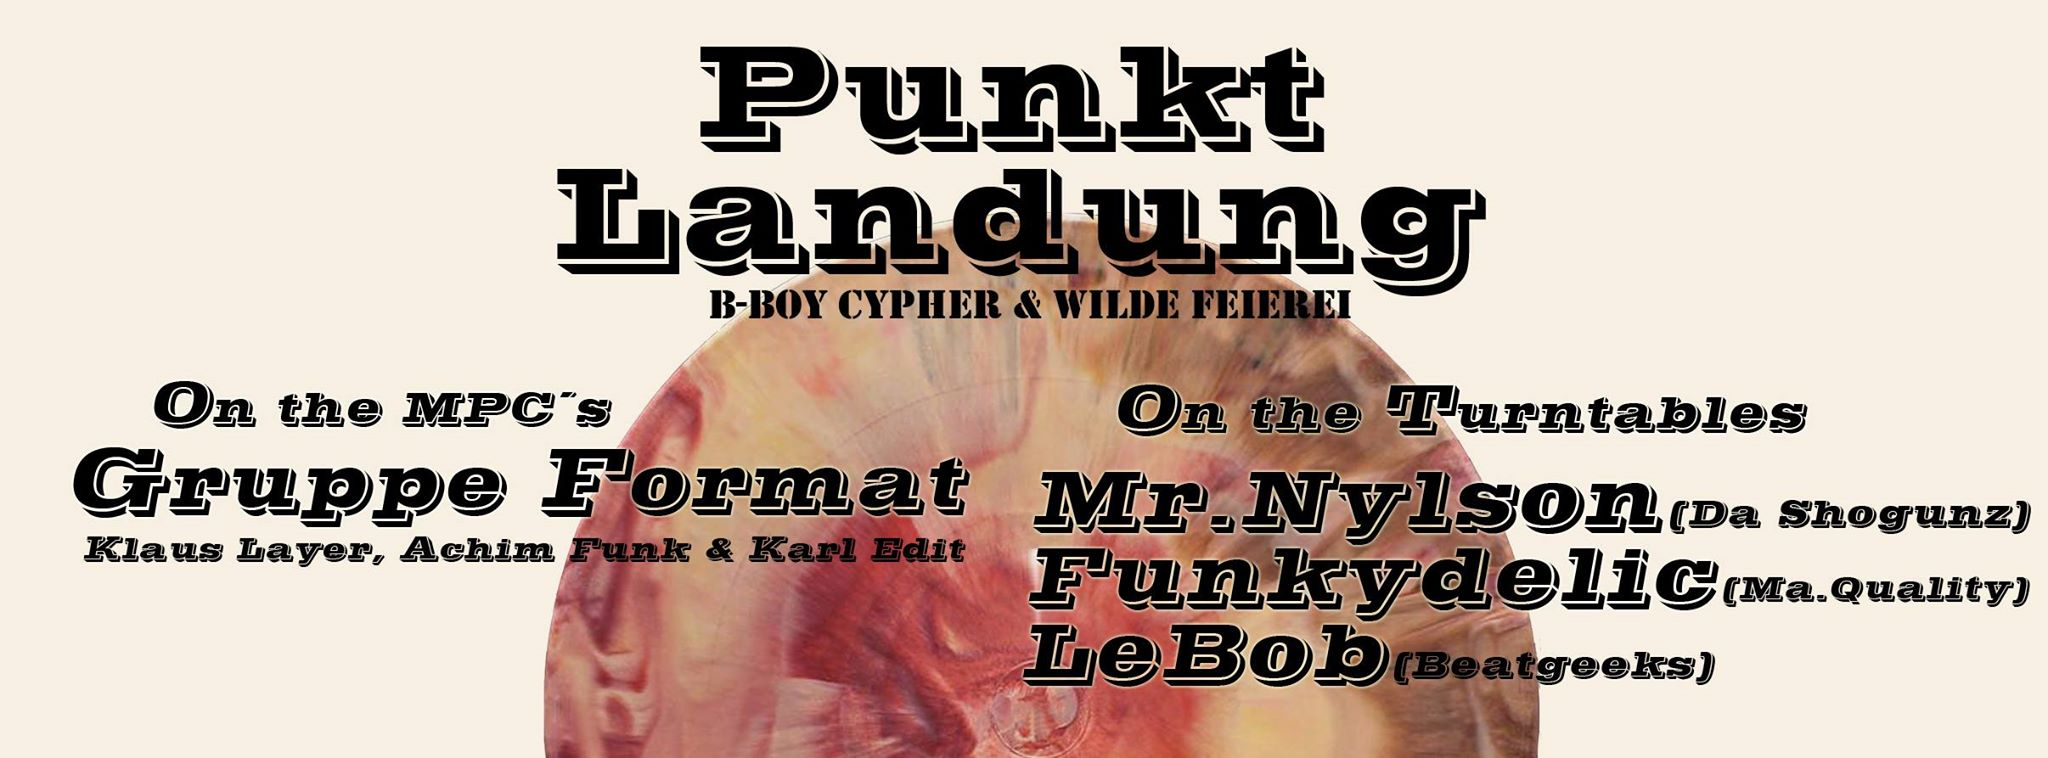 Punktlandung/6.2/Top Rock Battle/